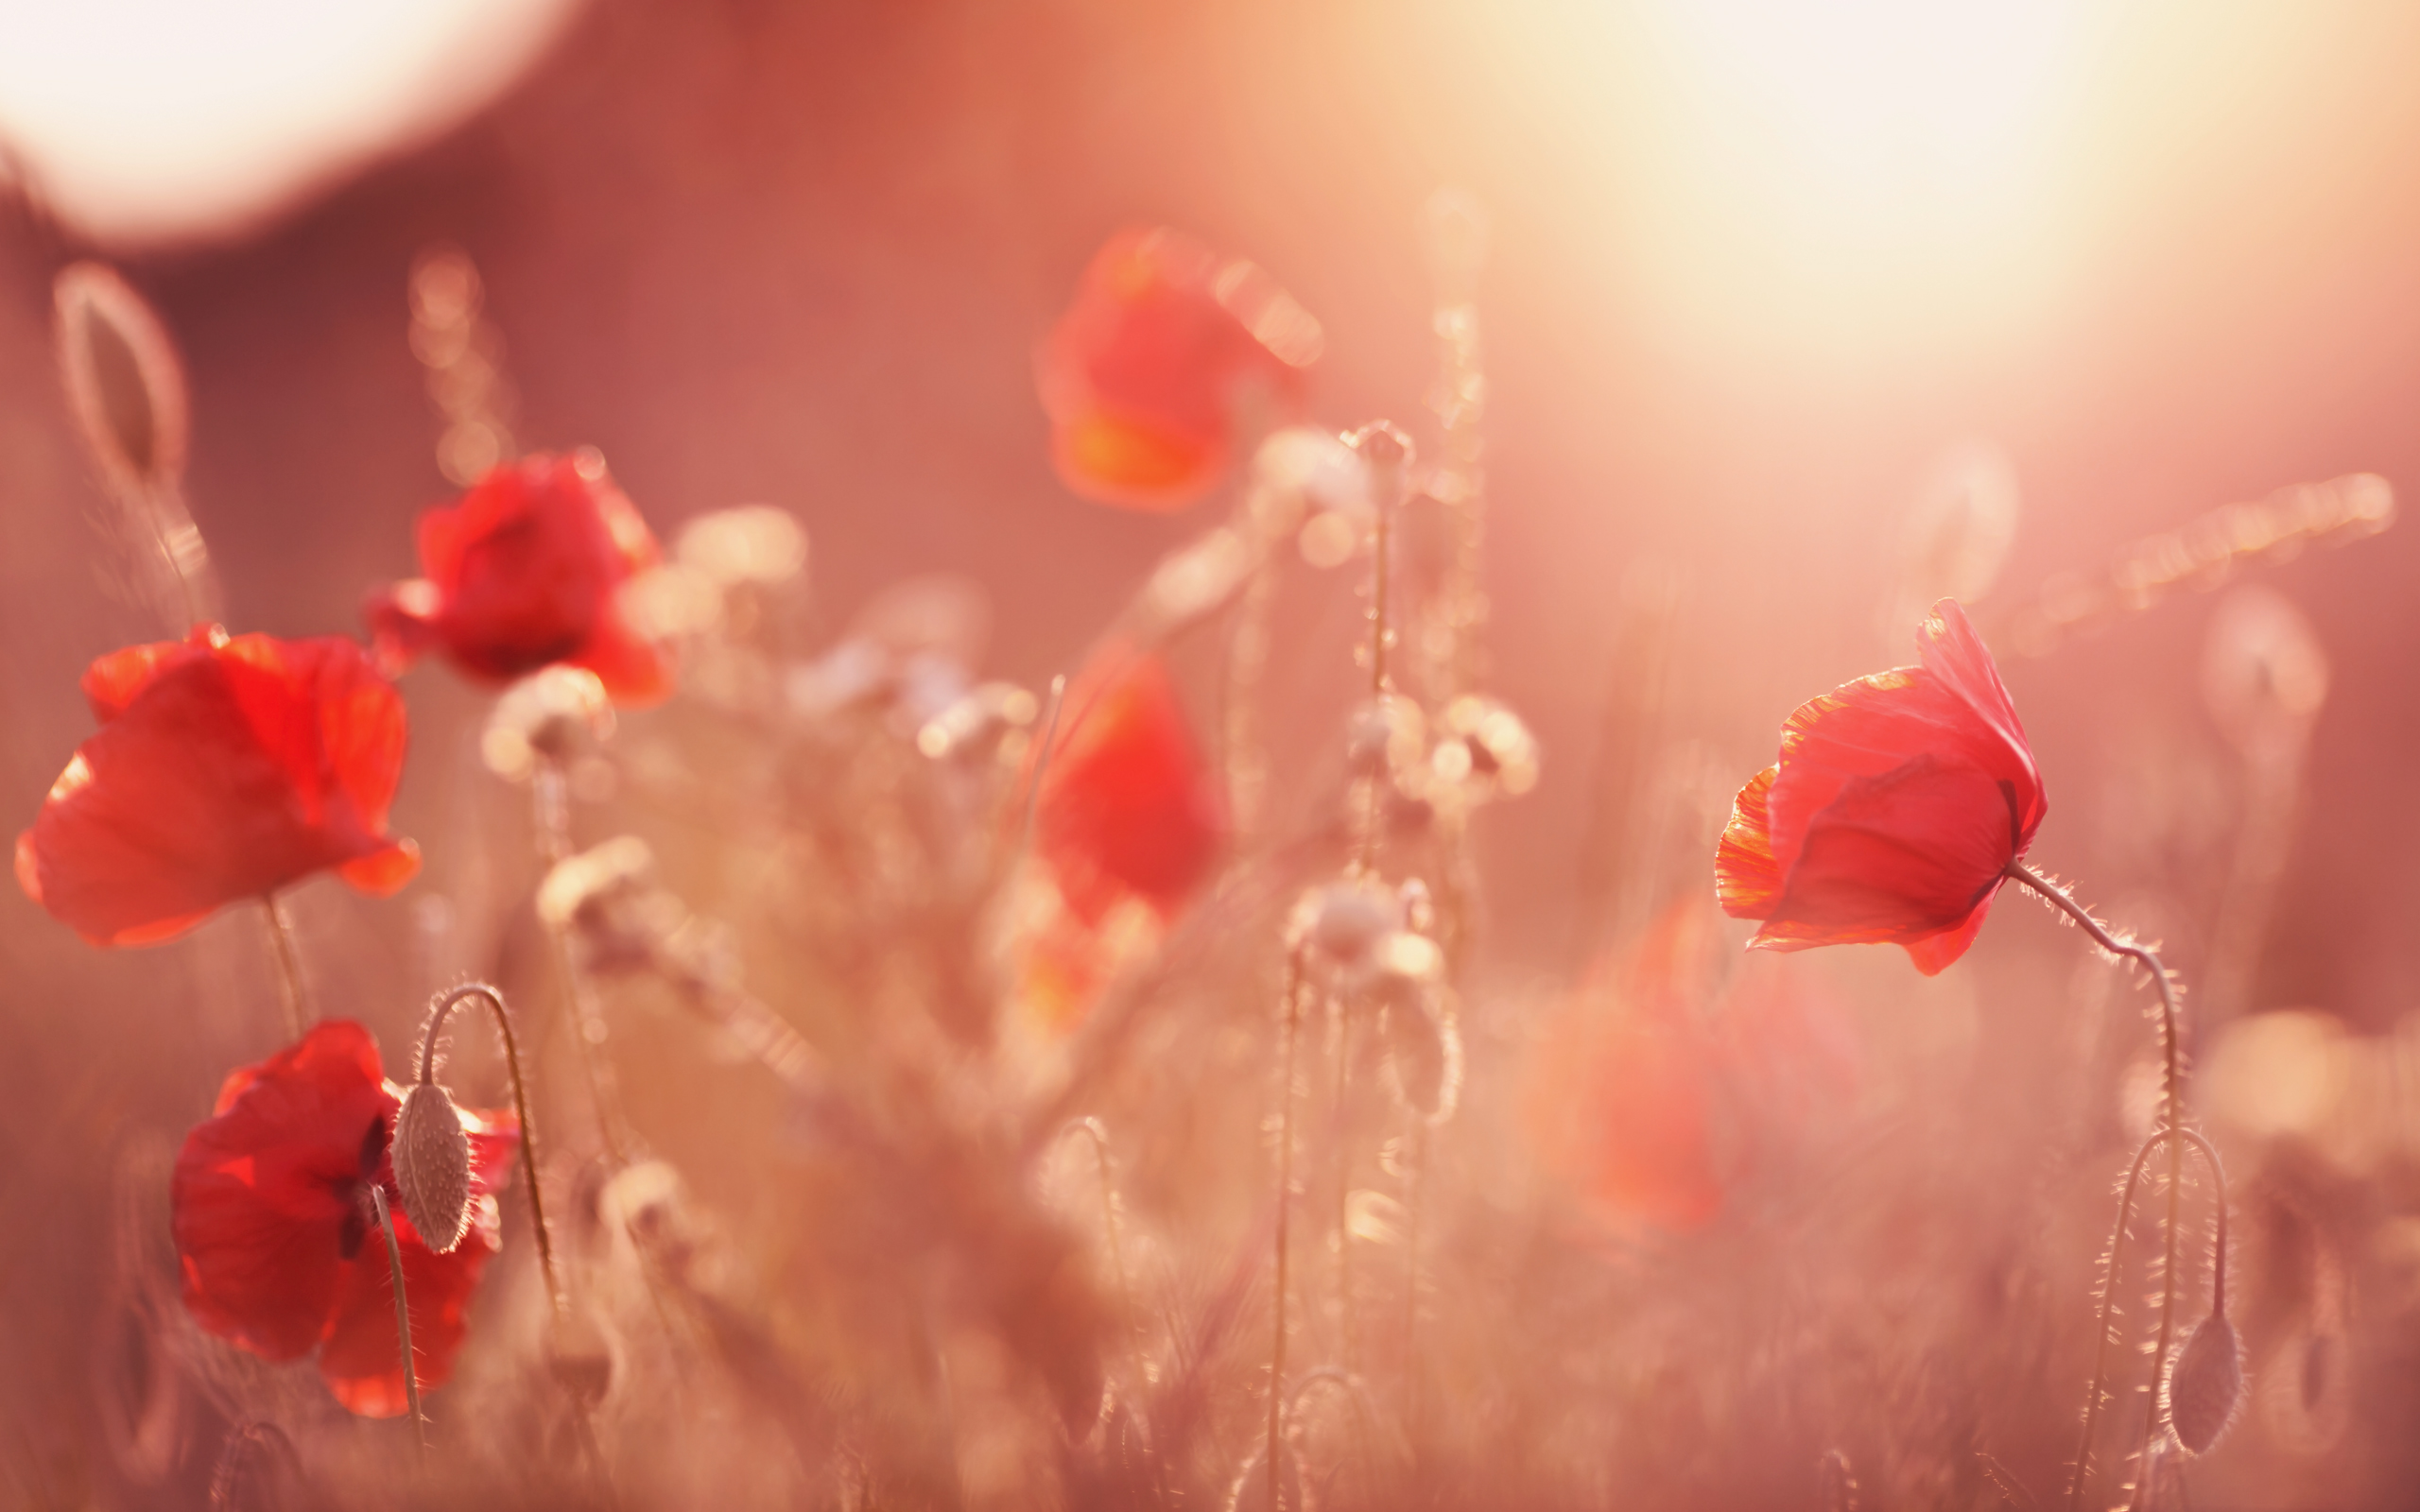 daily wallpaper: sunset poppy field | i like to waste my time